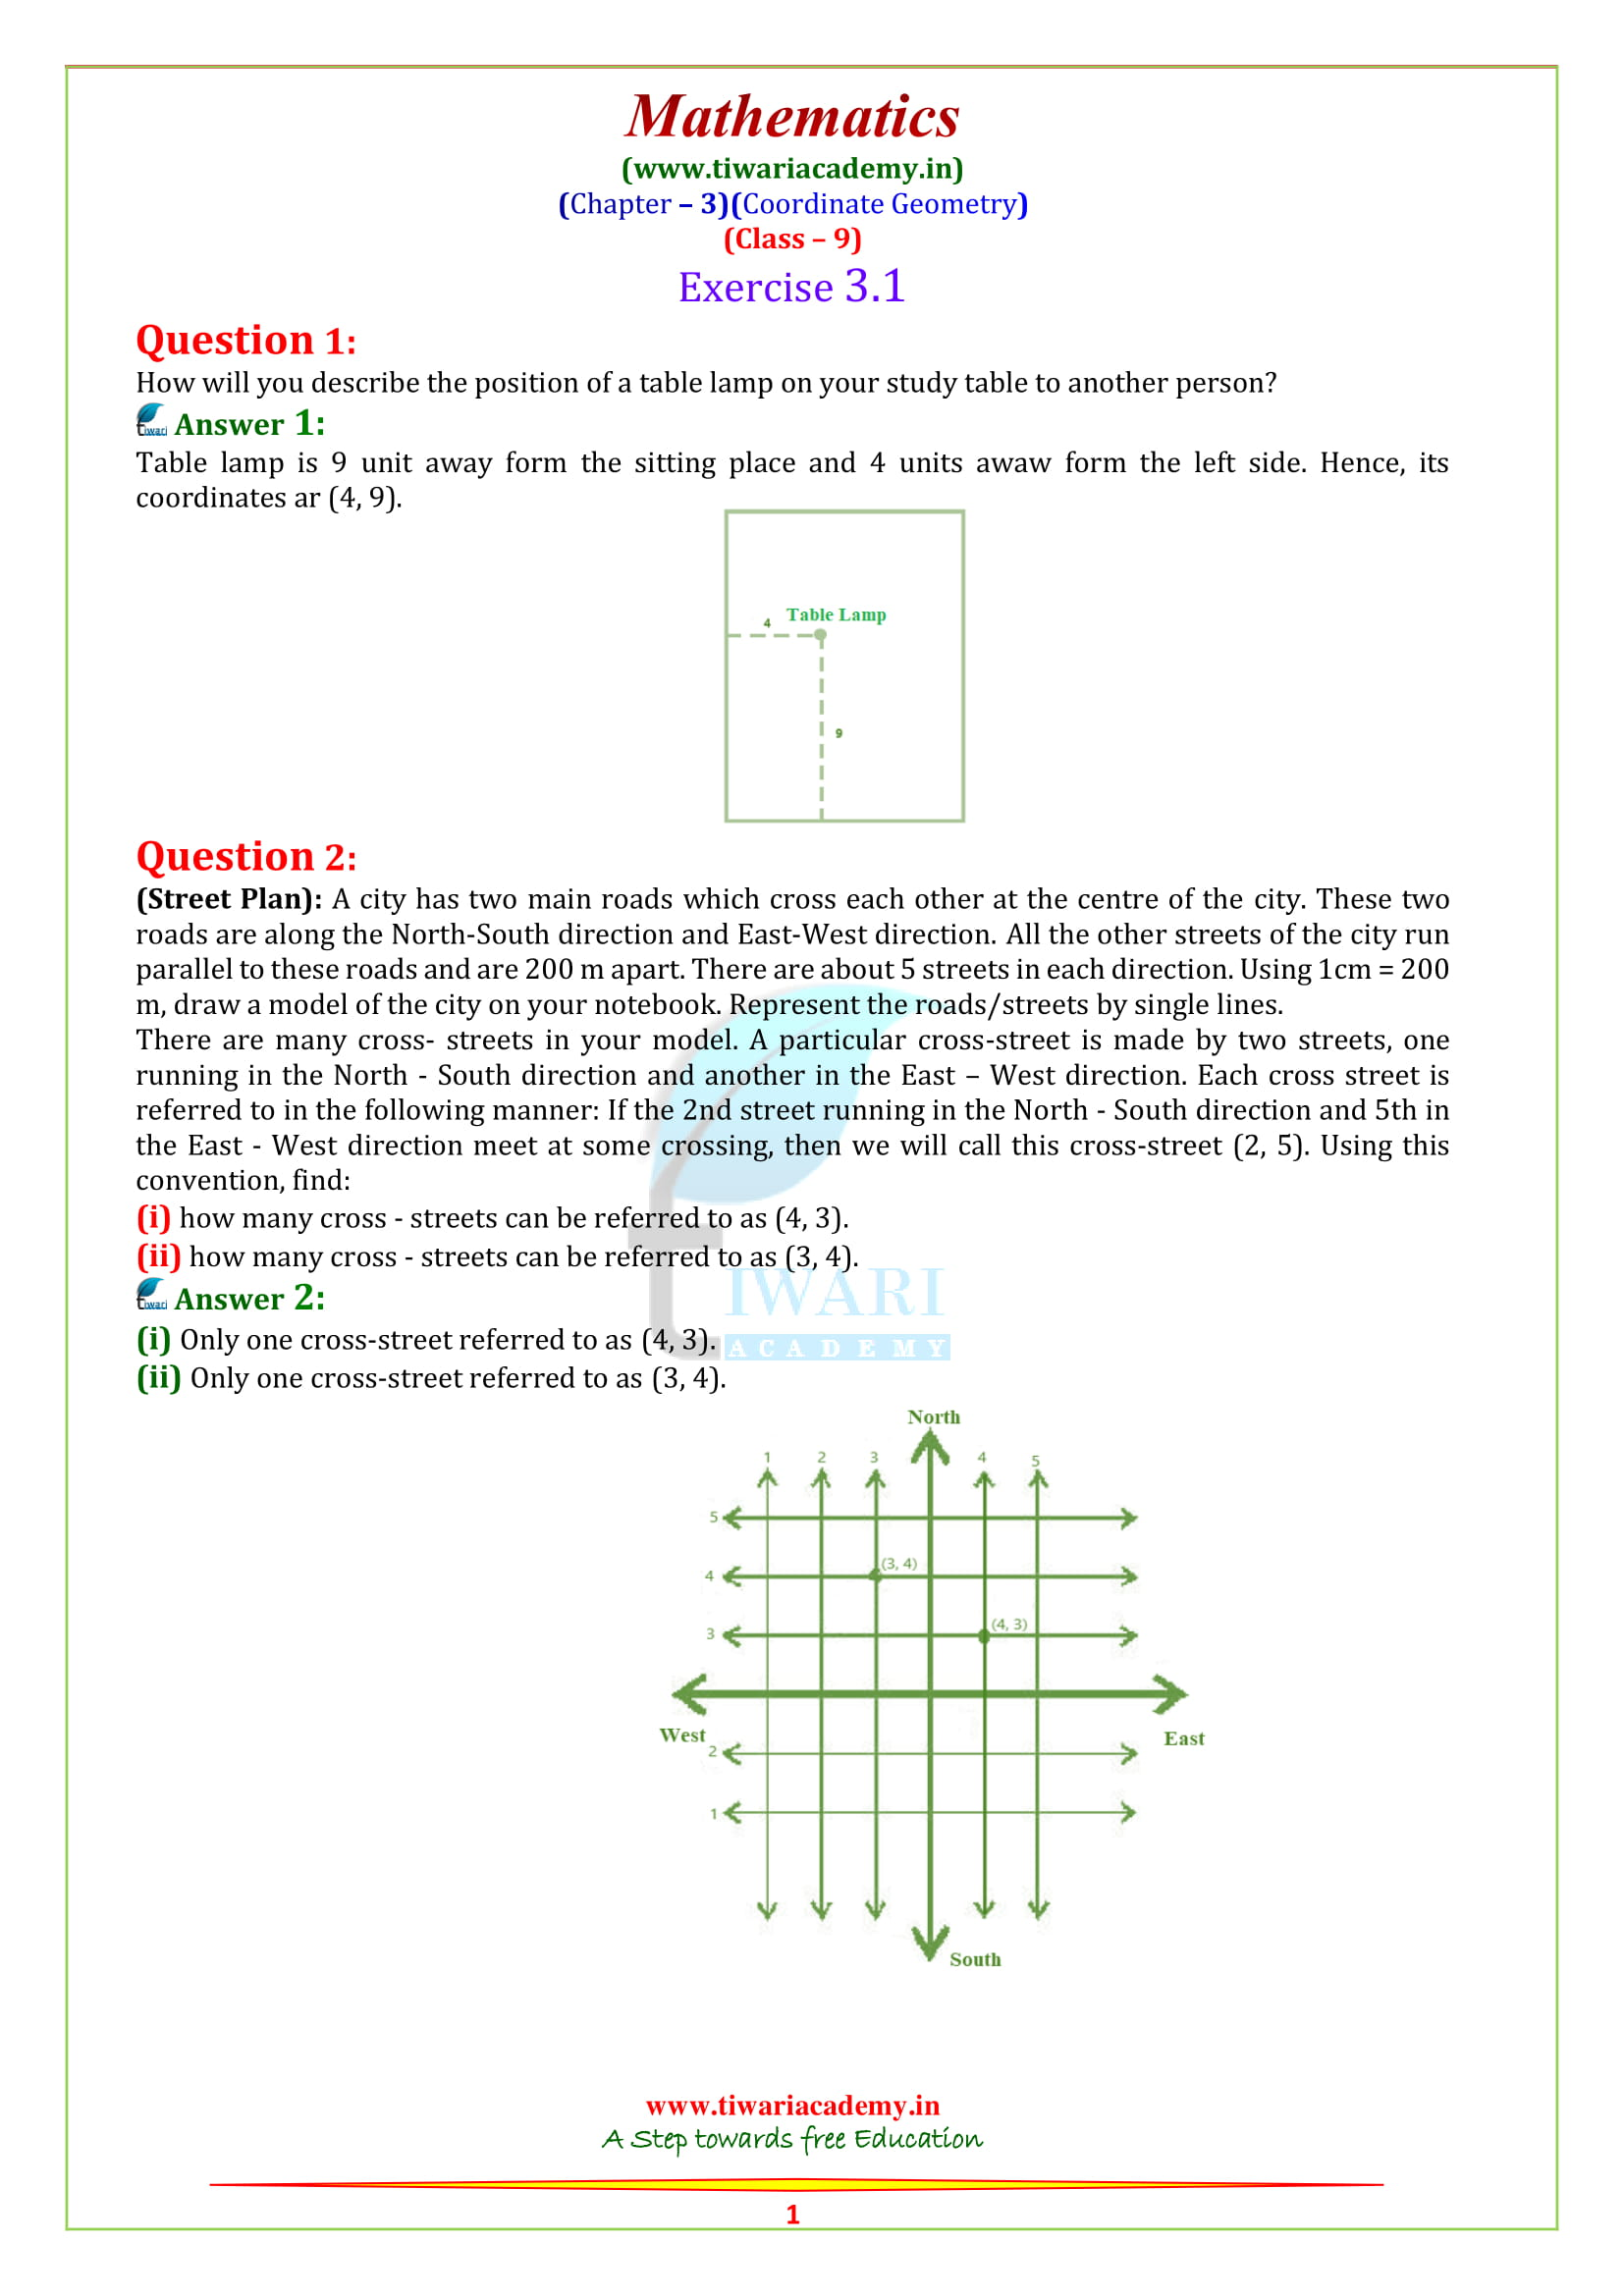 9 Maths Exercise 3.1 solutions in english medium